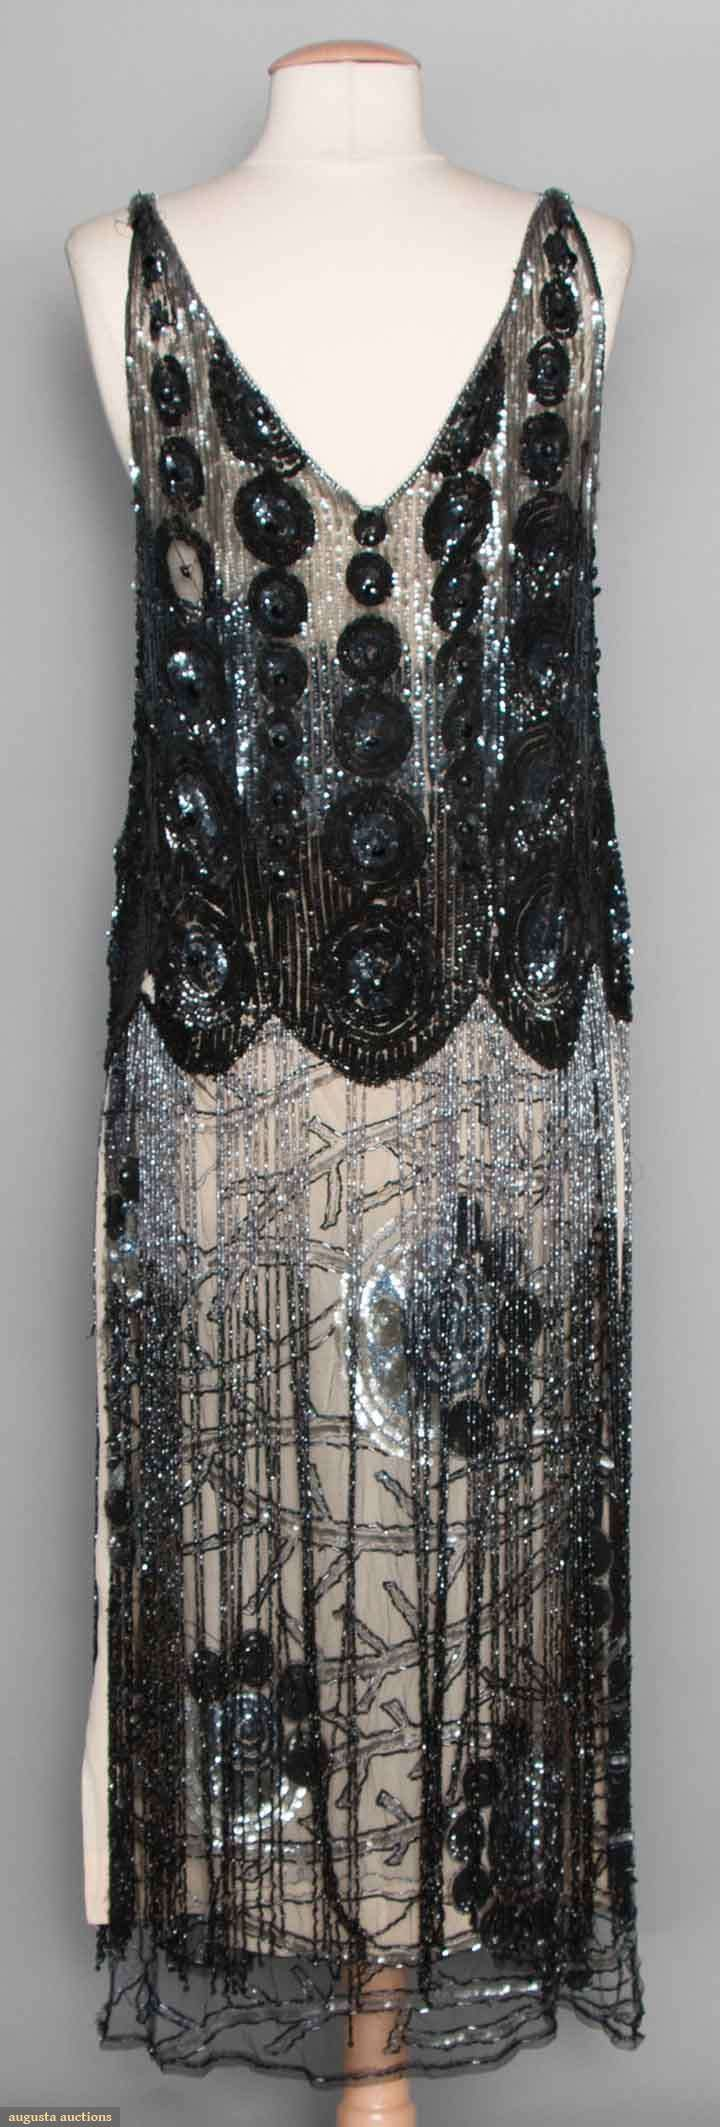 """Sequined & Beaded Tabard, C. 1925. Black net, shoulder to hip area covered w/ black & gunmetal sequins in dense circular patterns, stylized branch & blossom pattern below hip to hem is partially concealed by 20+"""" long beaded fringe. Suddon-Cleaver Costume Collection (hva)"""